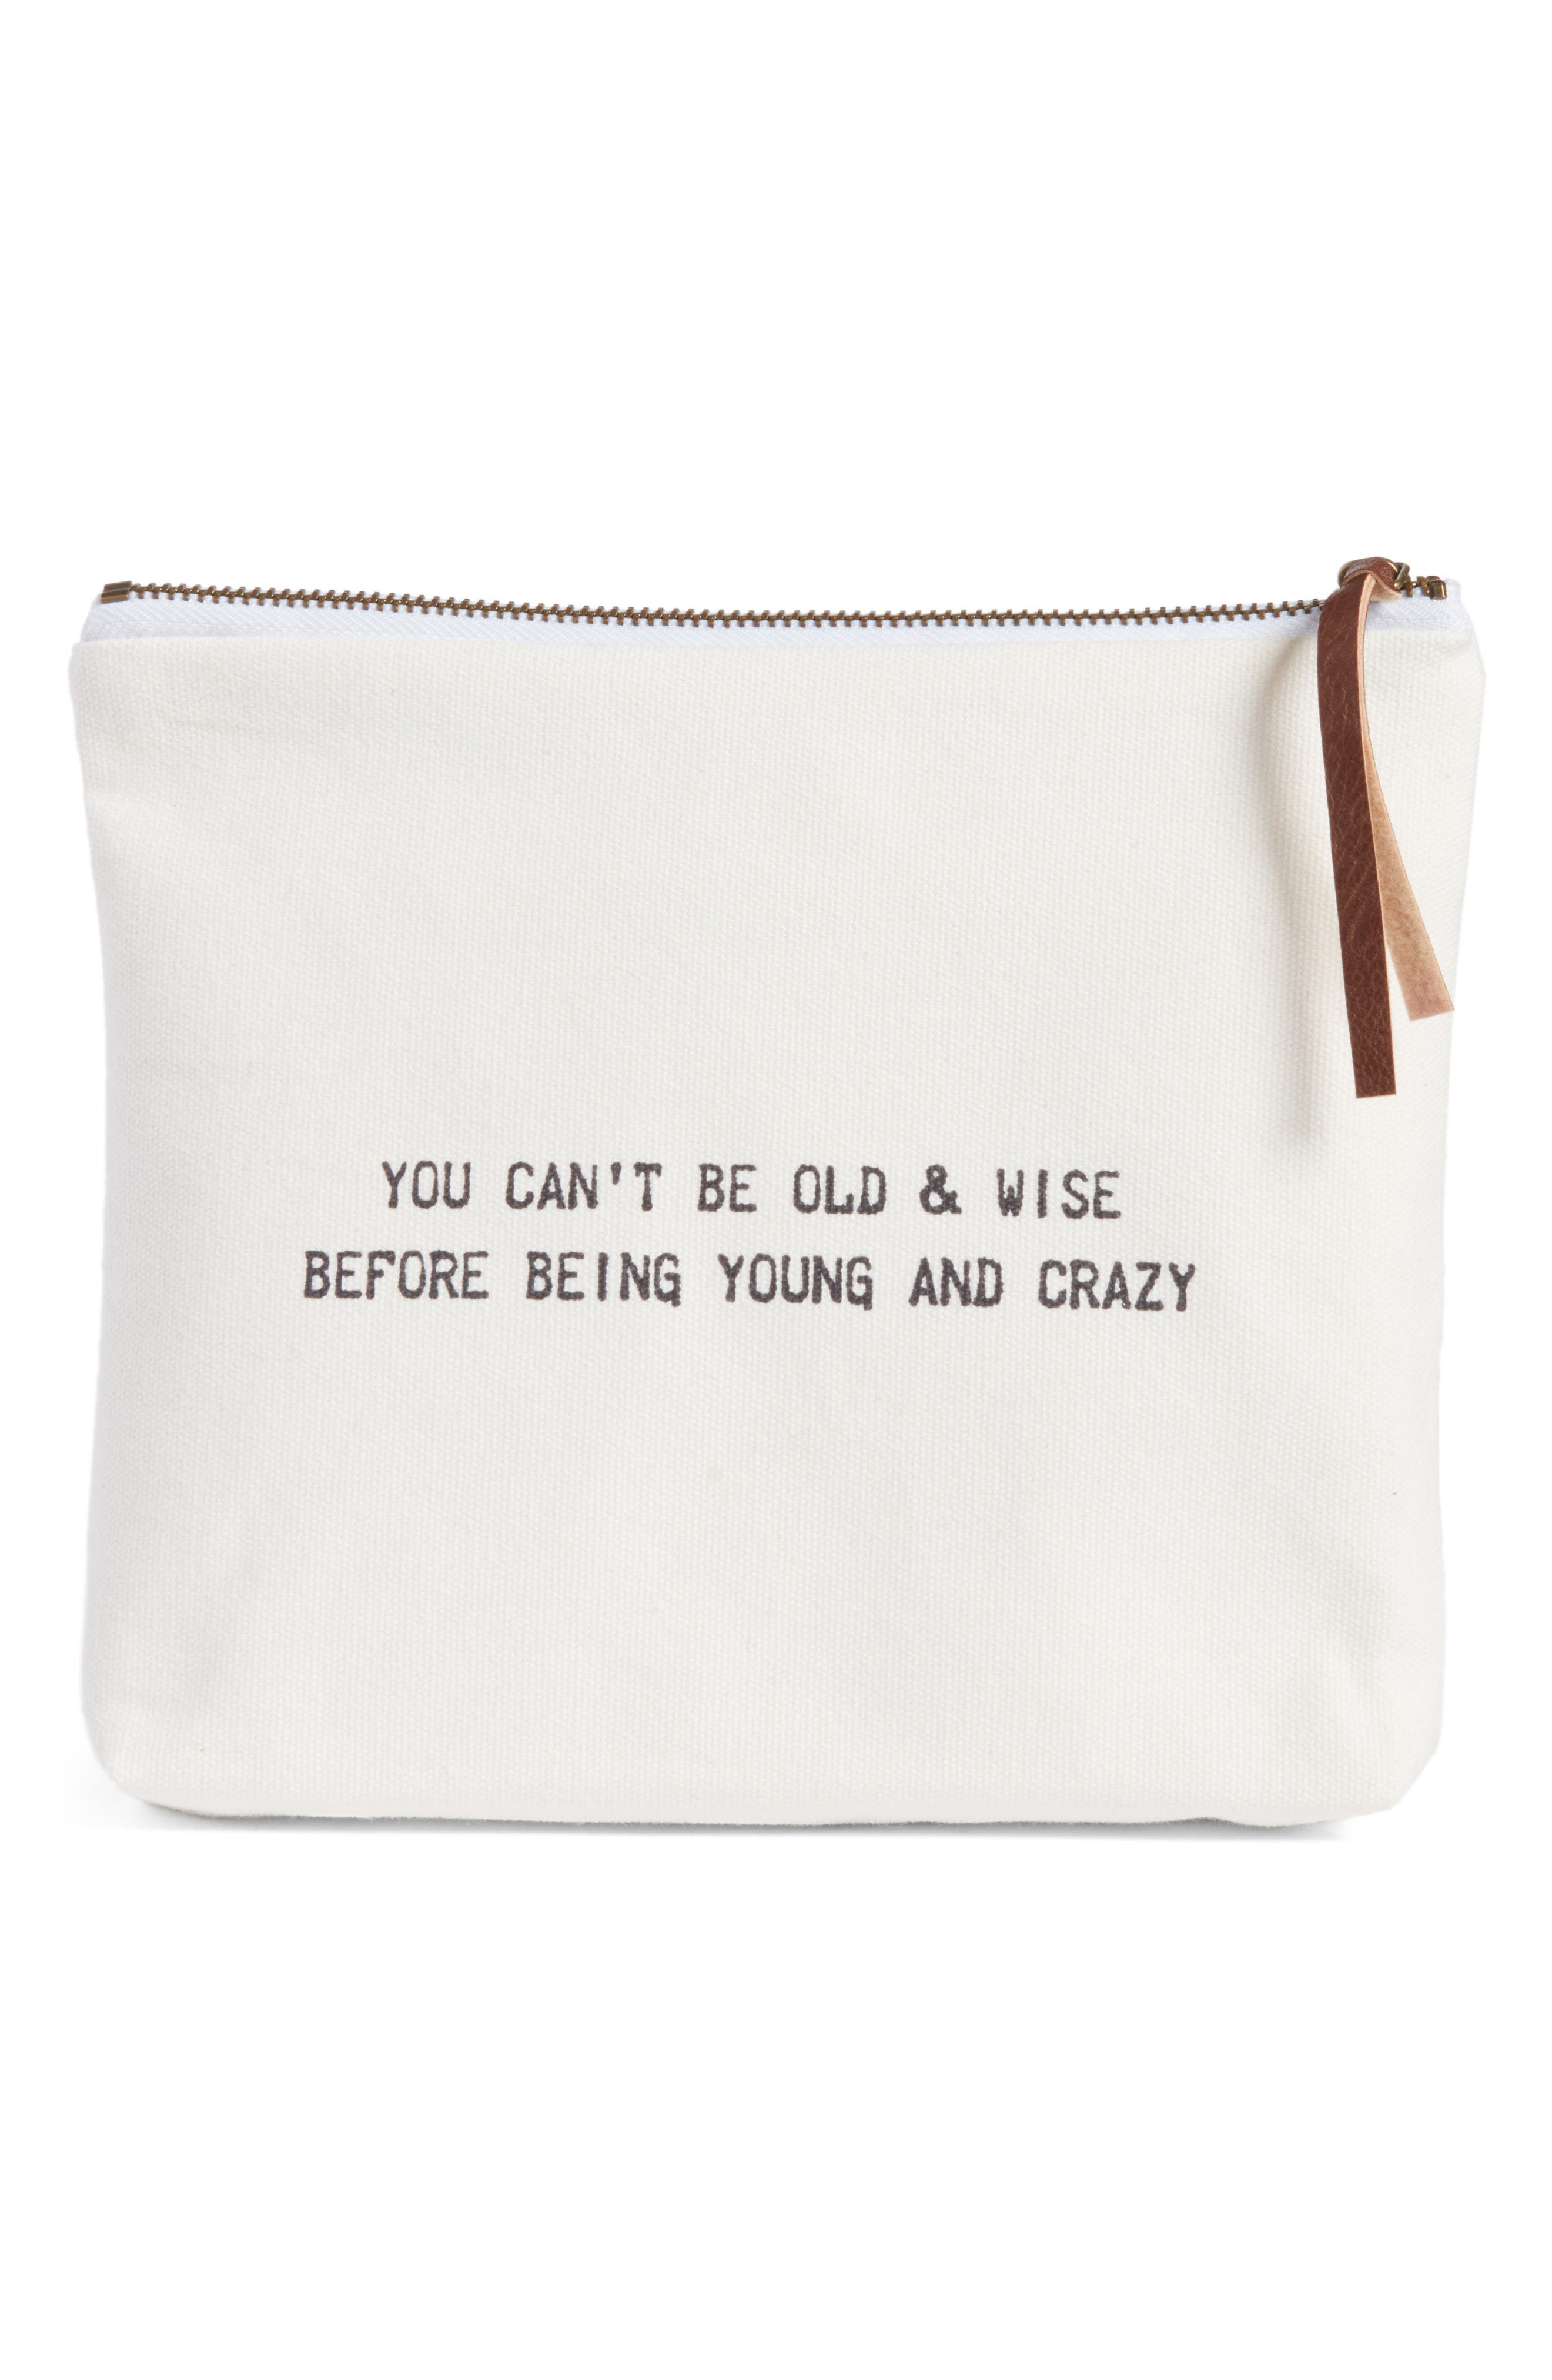 Alternate Image 1 Selected - Levtex Old & Wise Before Young & Crazy Zip Top Accessory Bag